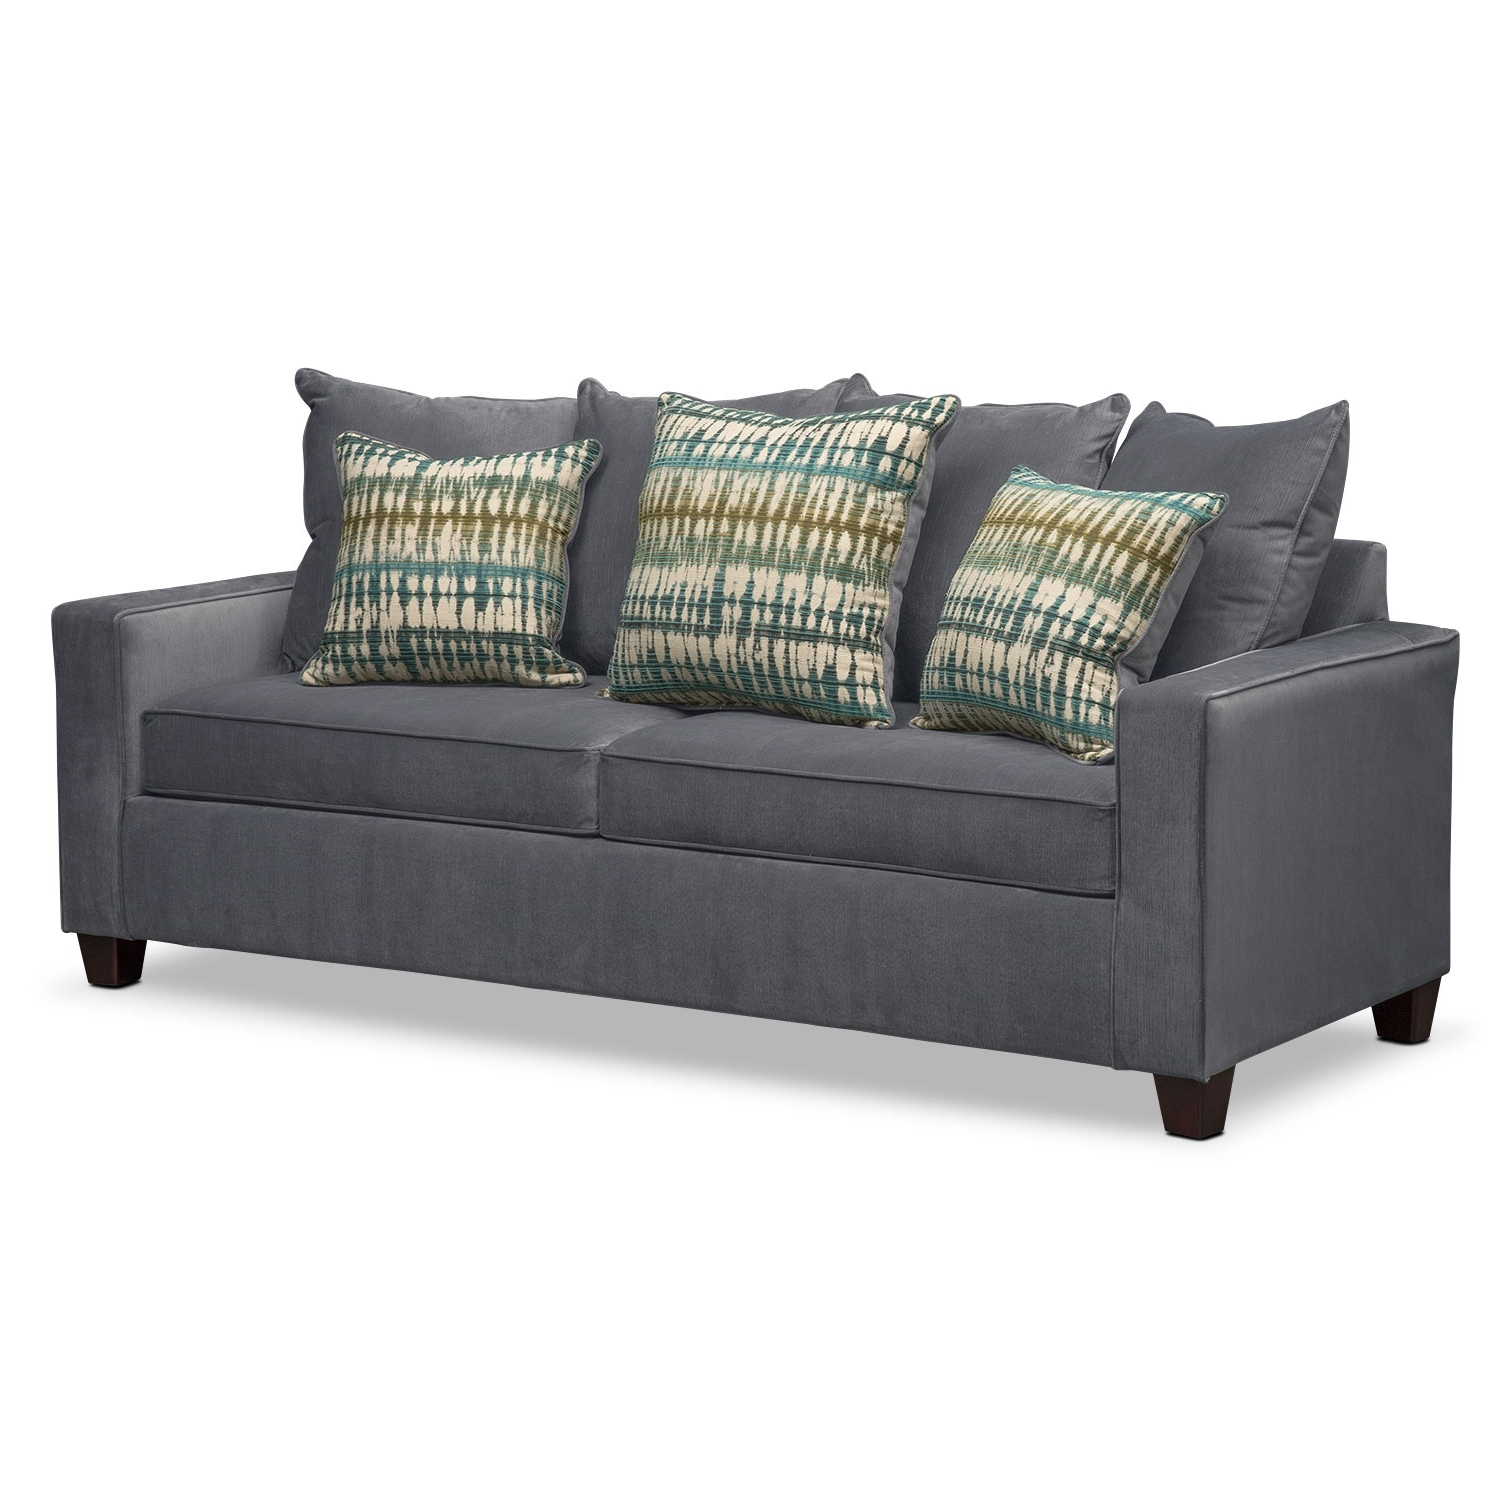 Value City Furniture And Mattresses Throughout Widely Used Value City Sofas (View 5 of 15)